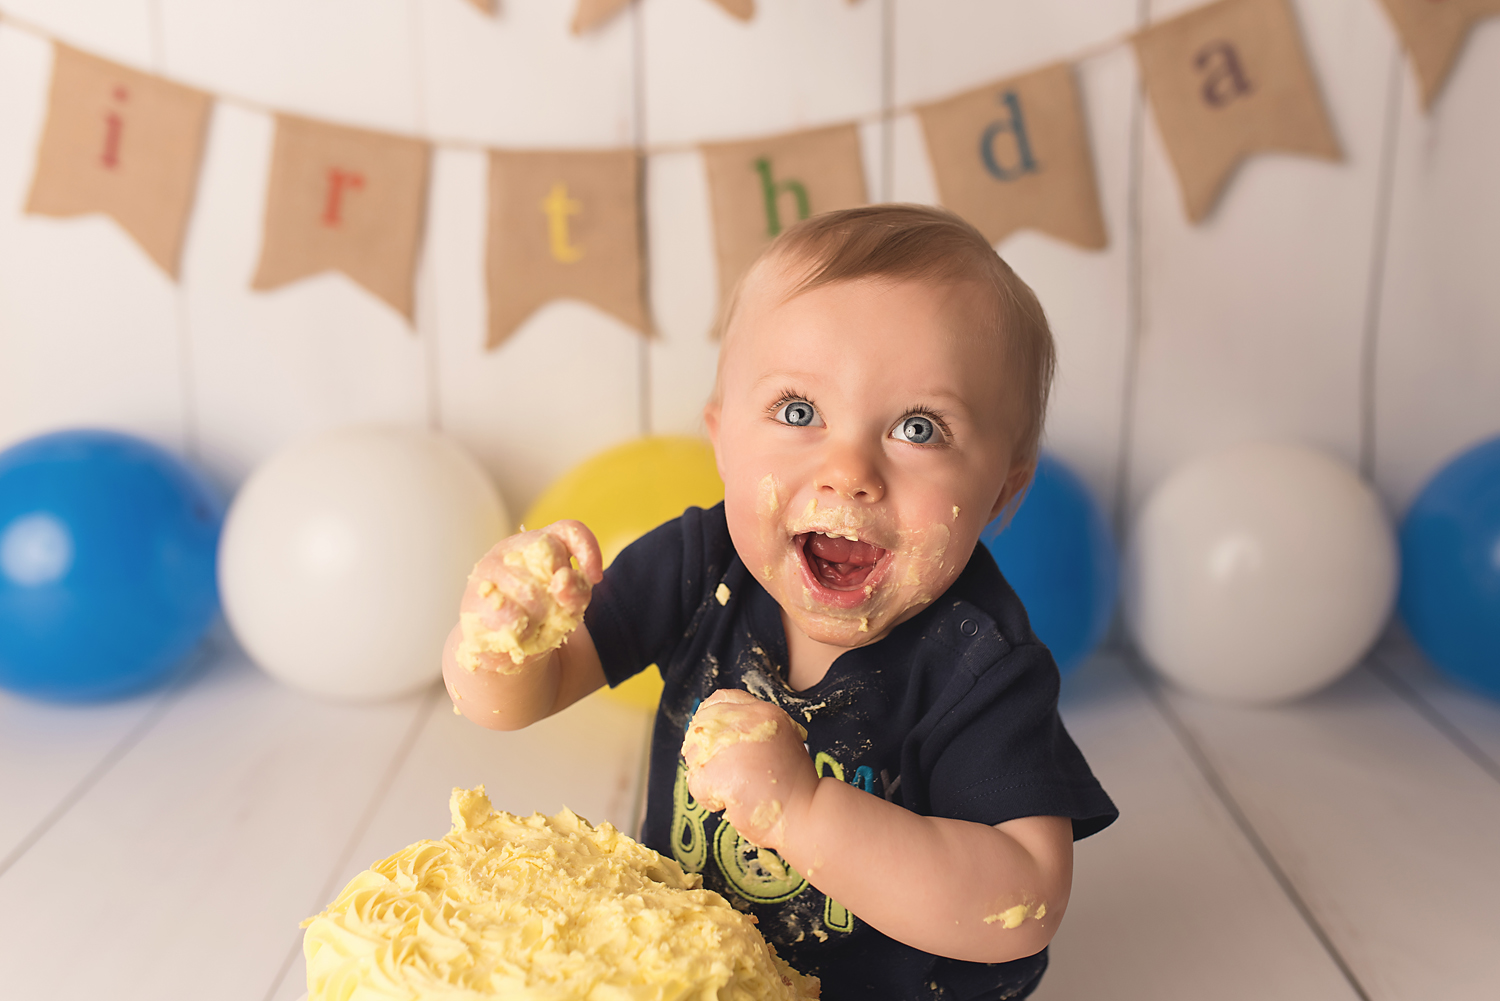 Cake-Smash-Photographer-Charlotte.jpg